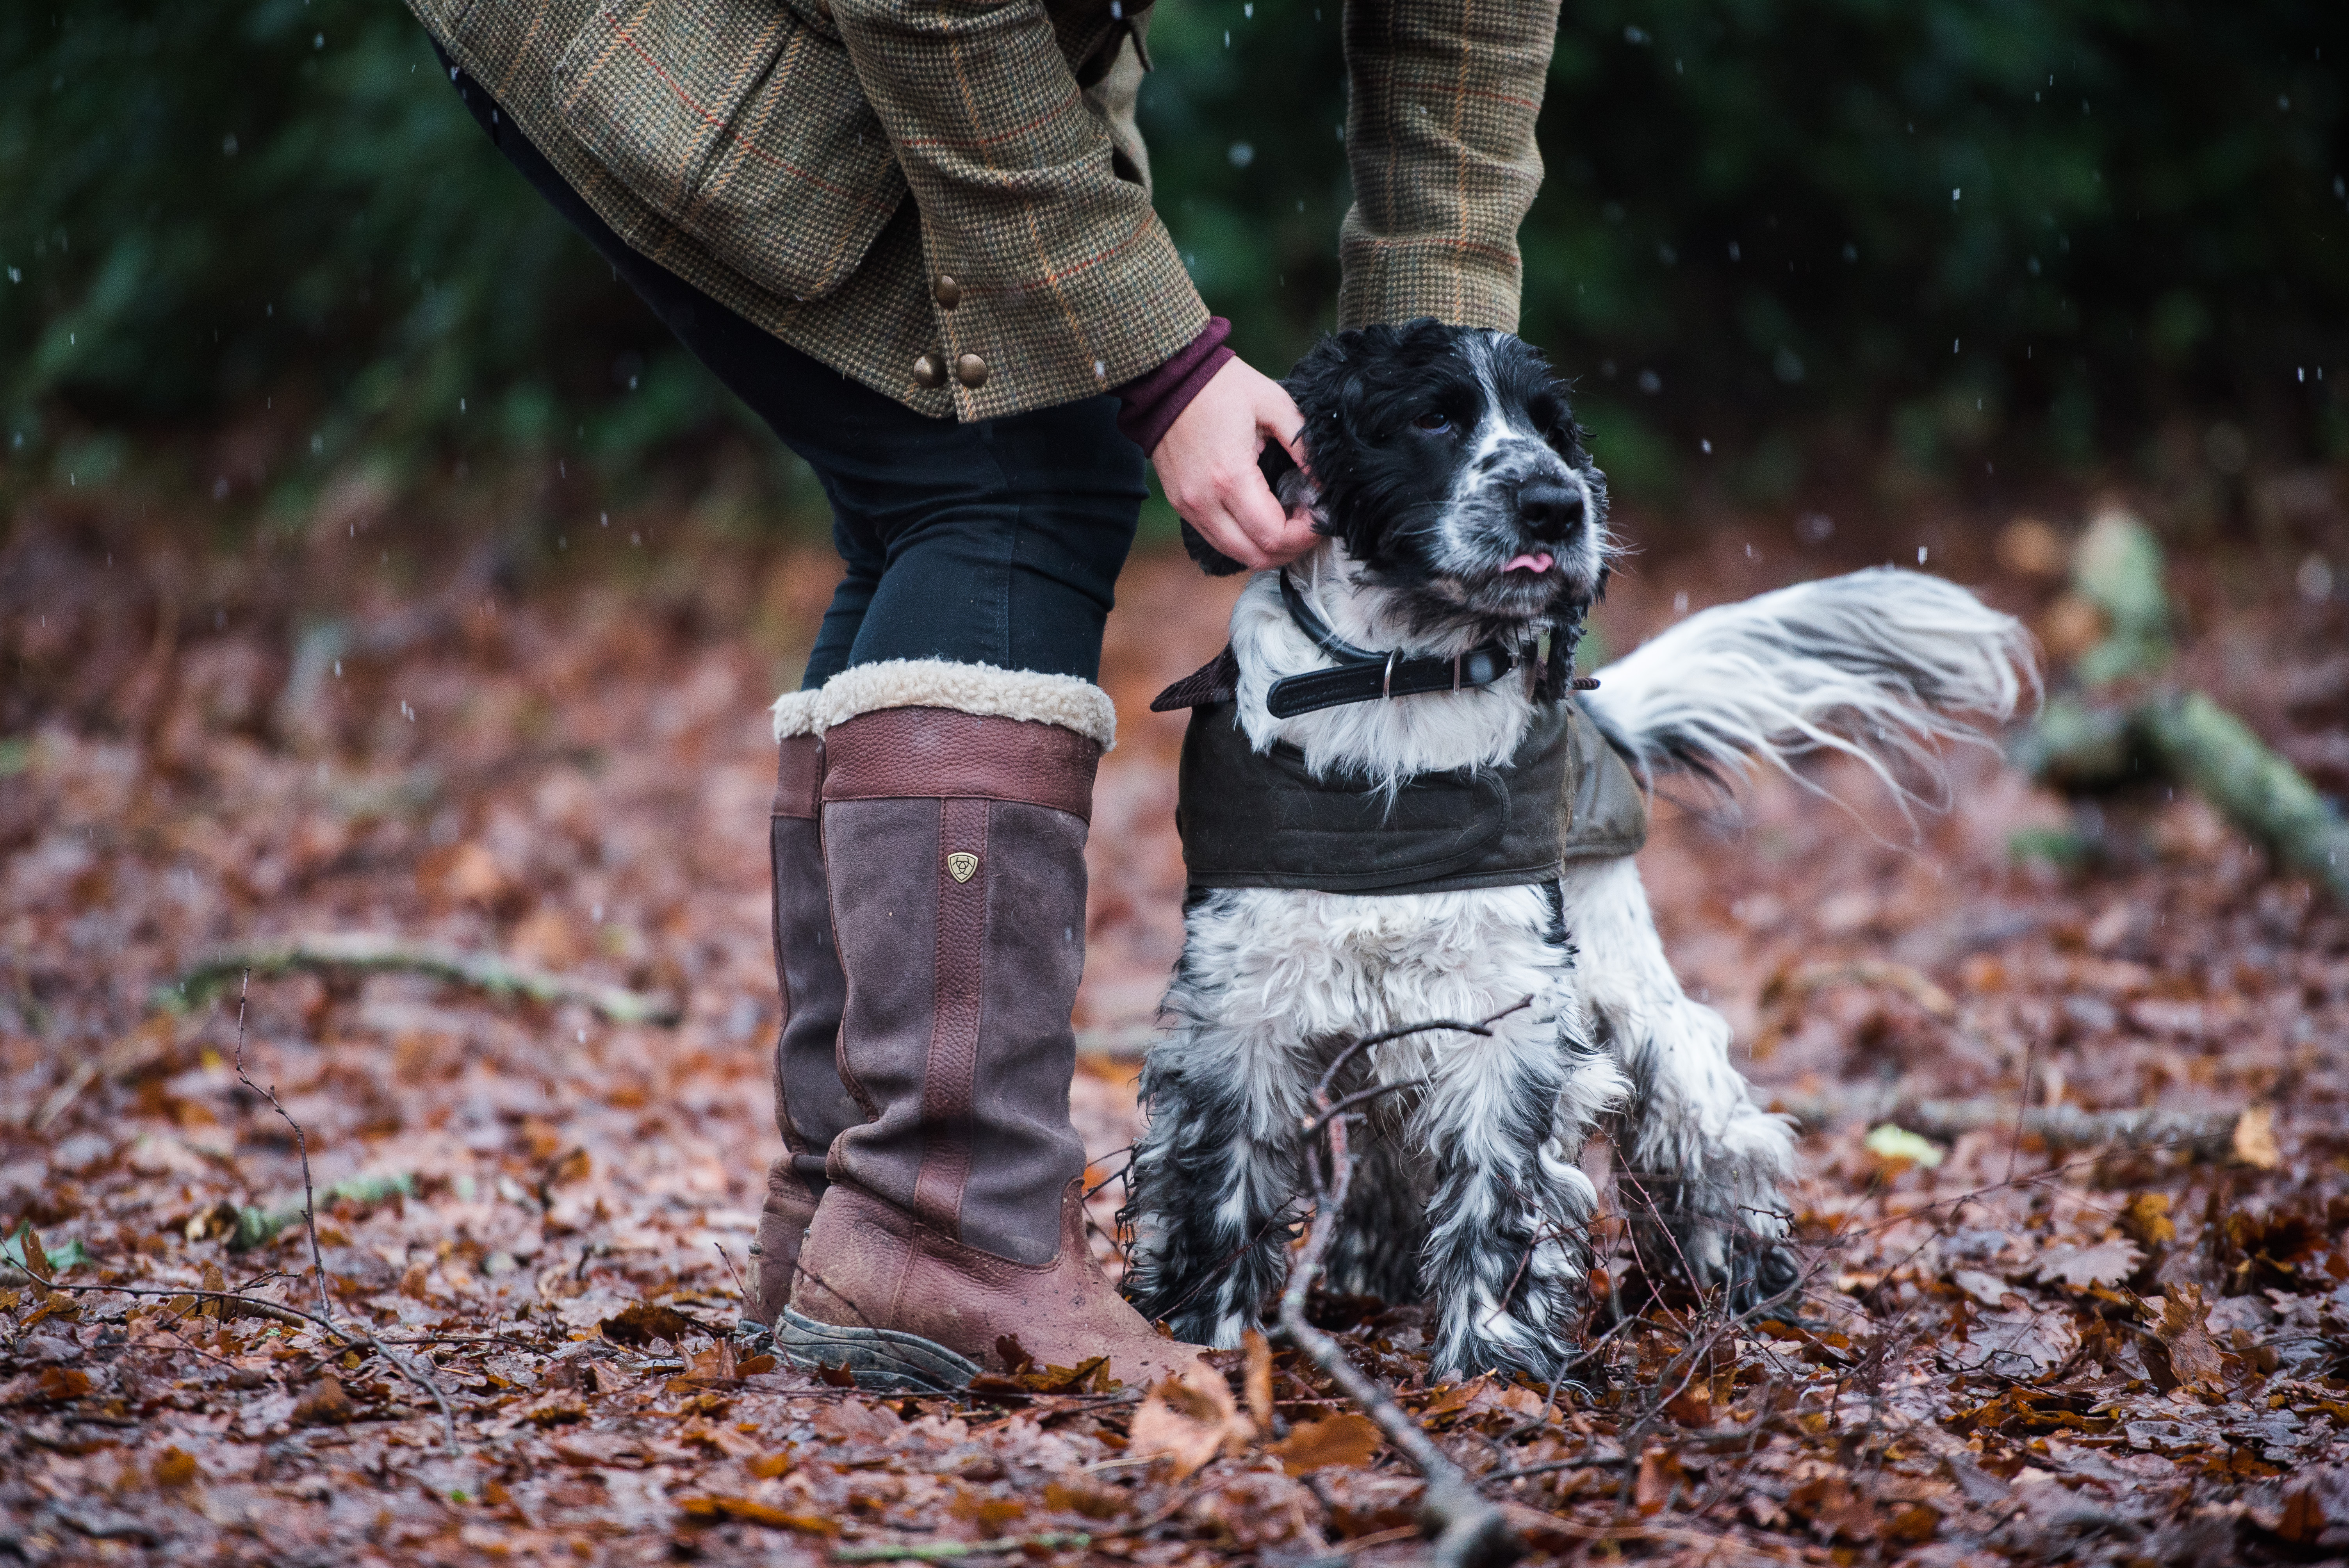 Winter Country Clothing for Curvy Women - Equine and Country Lifestyle Blogger I via sophiecallahanblog.com I #lifestyleblogger #photography #countrylife